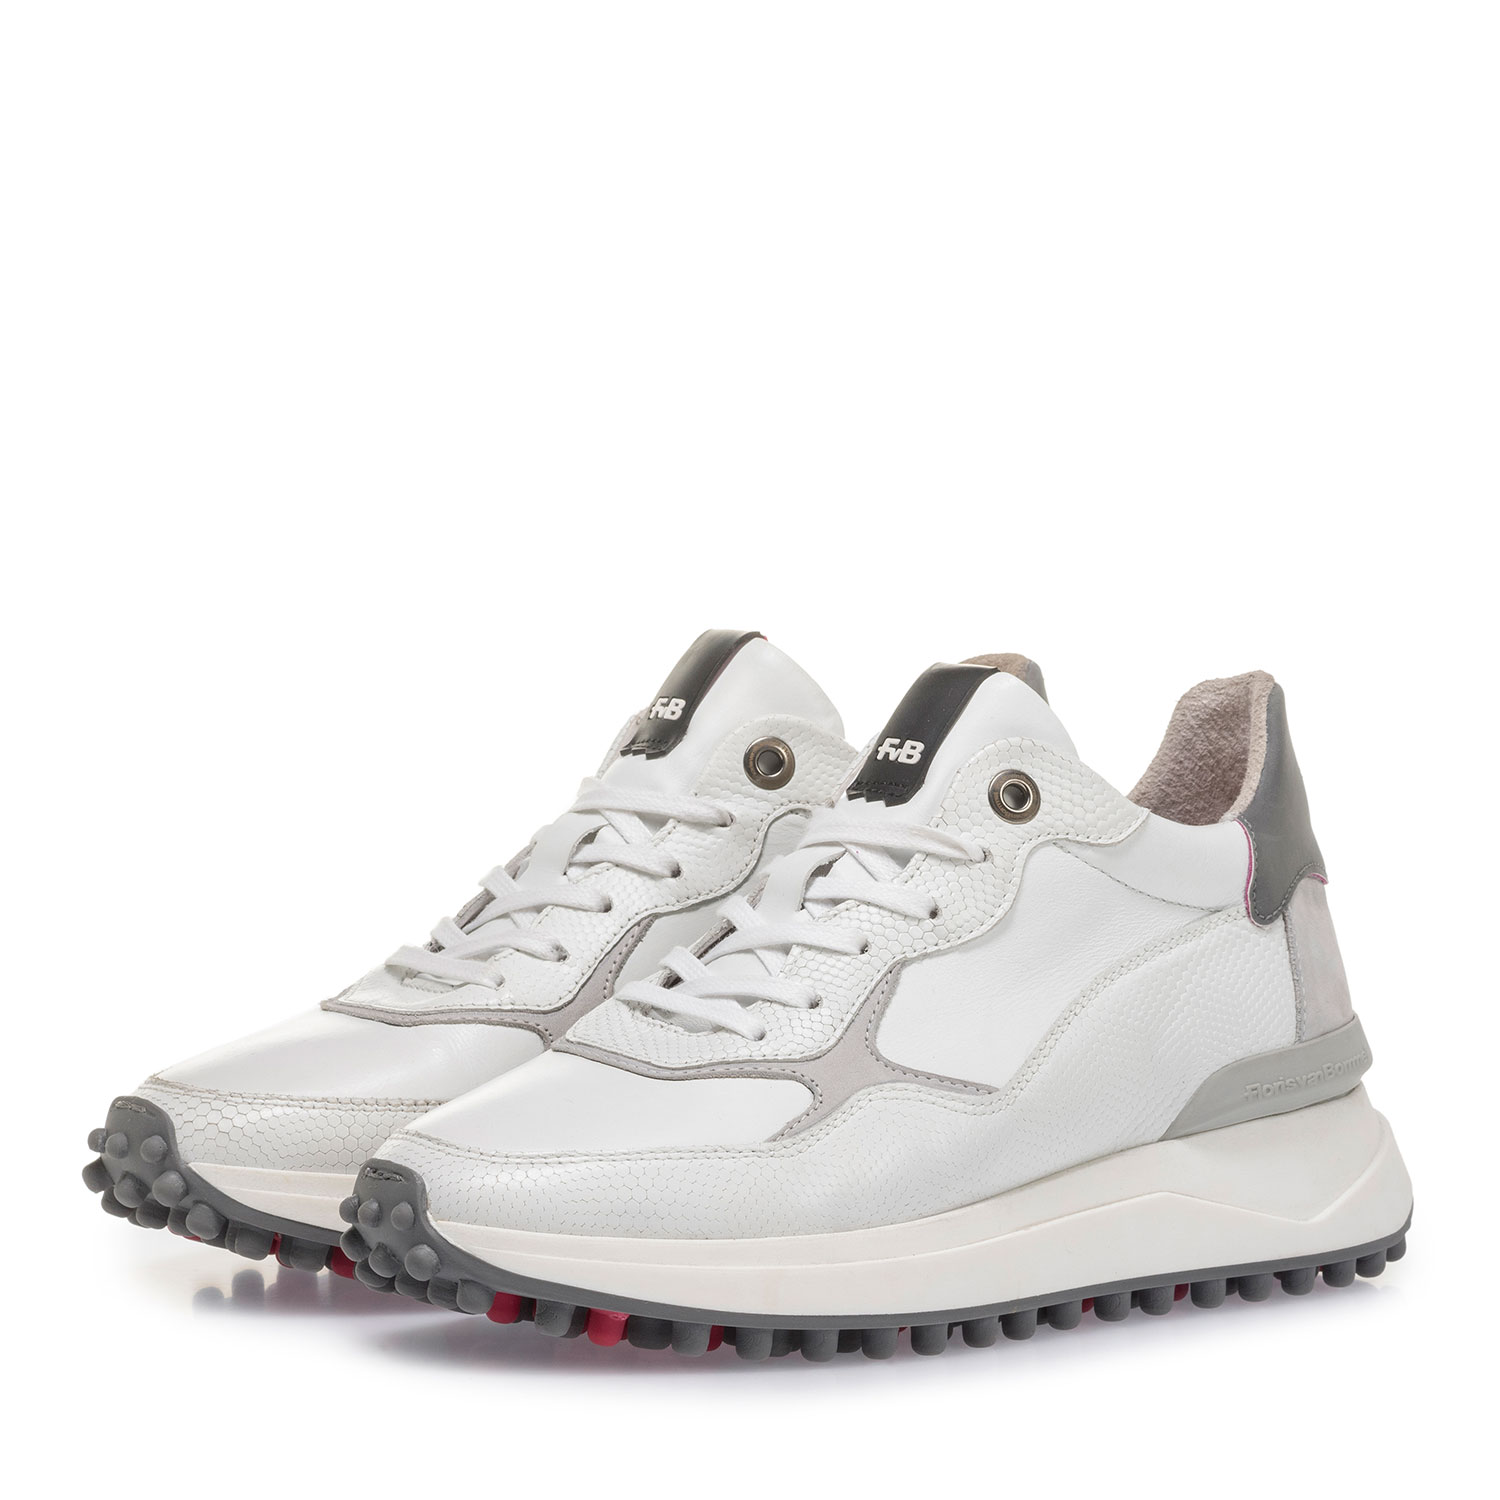 85307/00 - White and grey leather sneaker with print